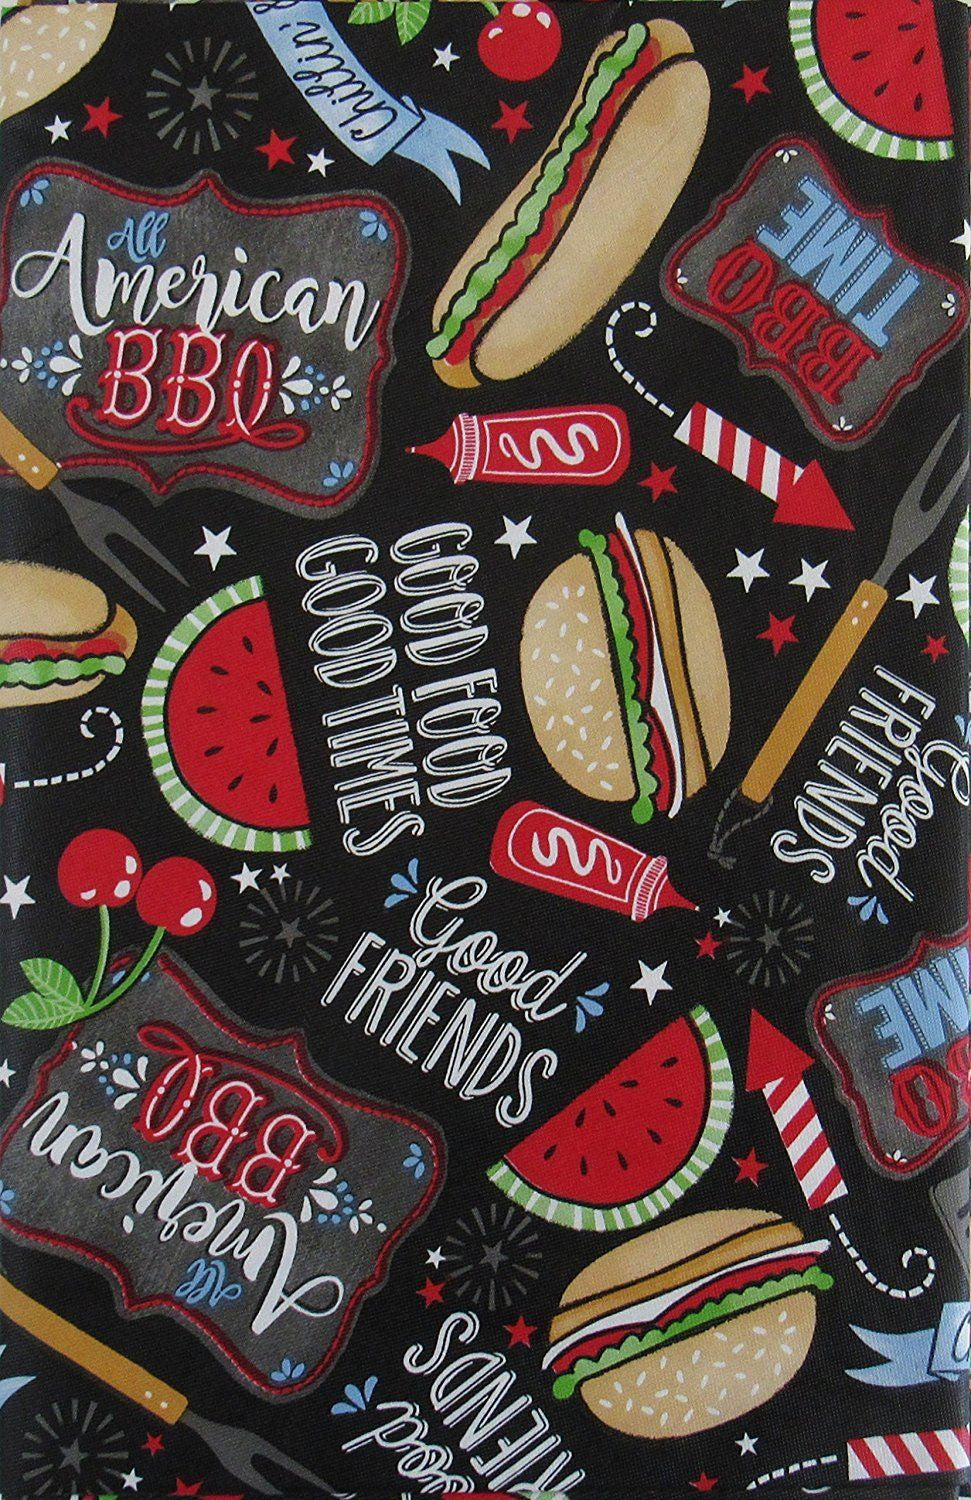 American BBQ Patriotic Chillin Grillin Vinyl Flannel Back Tablecloth 60 Round